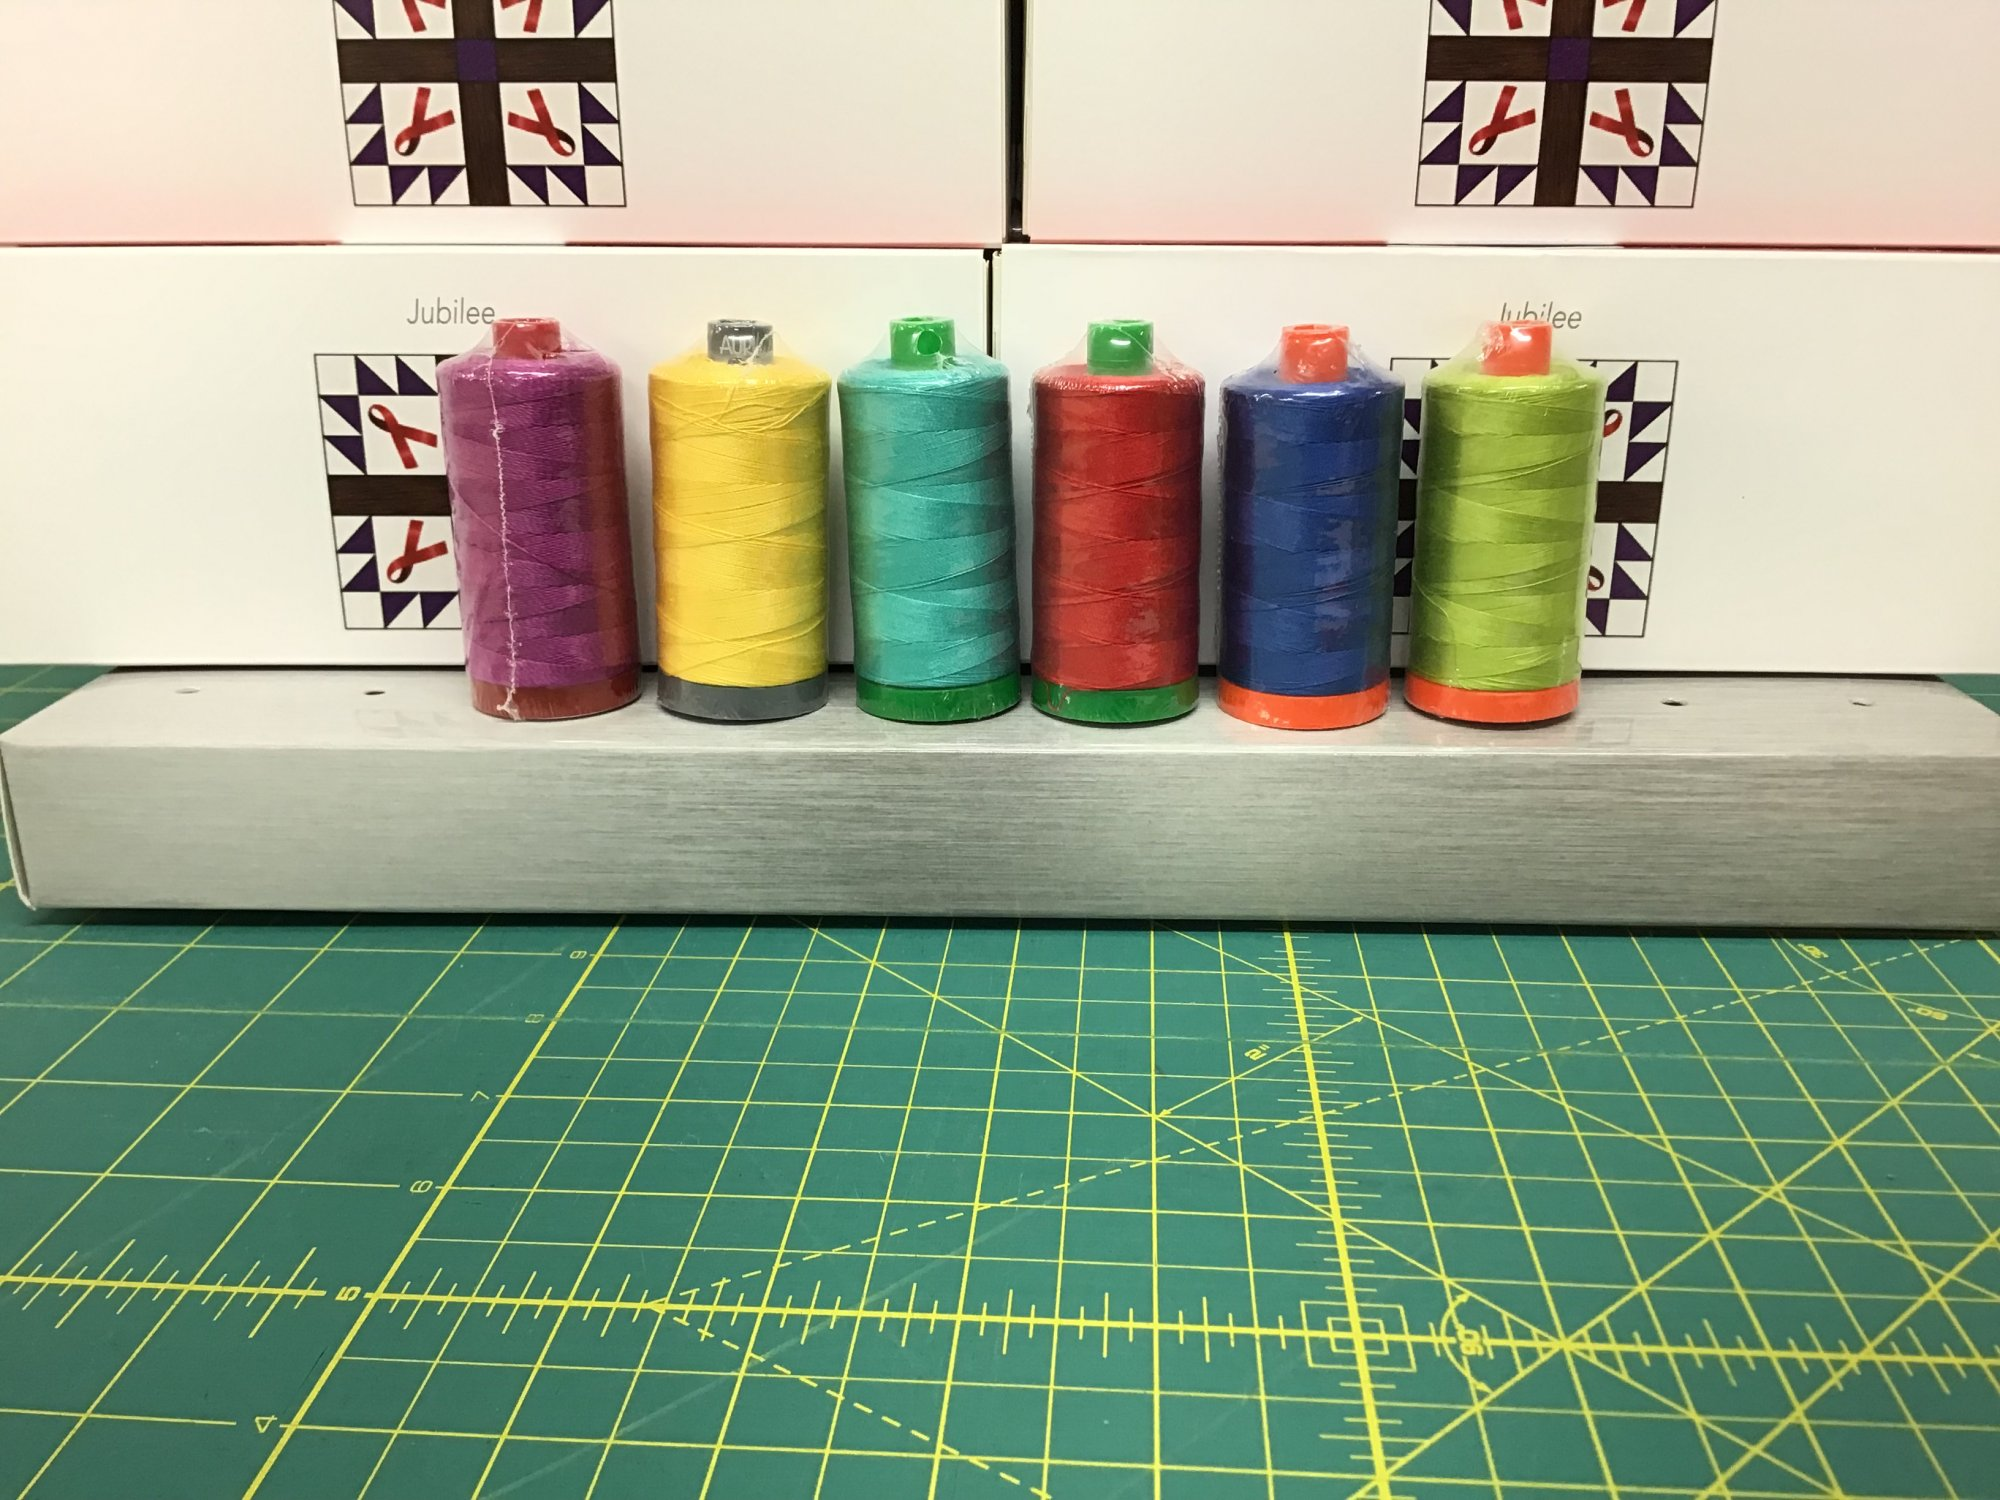 Jubilee - Aurifil Thread Box